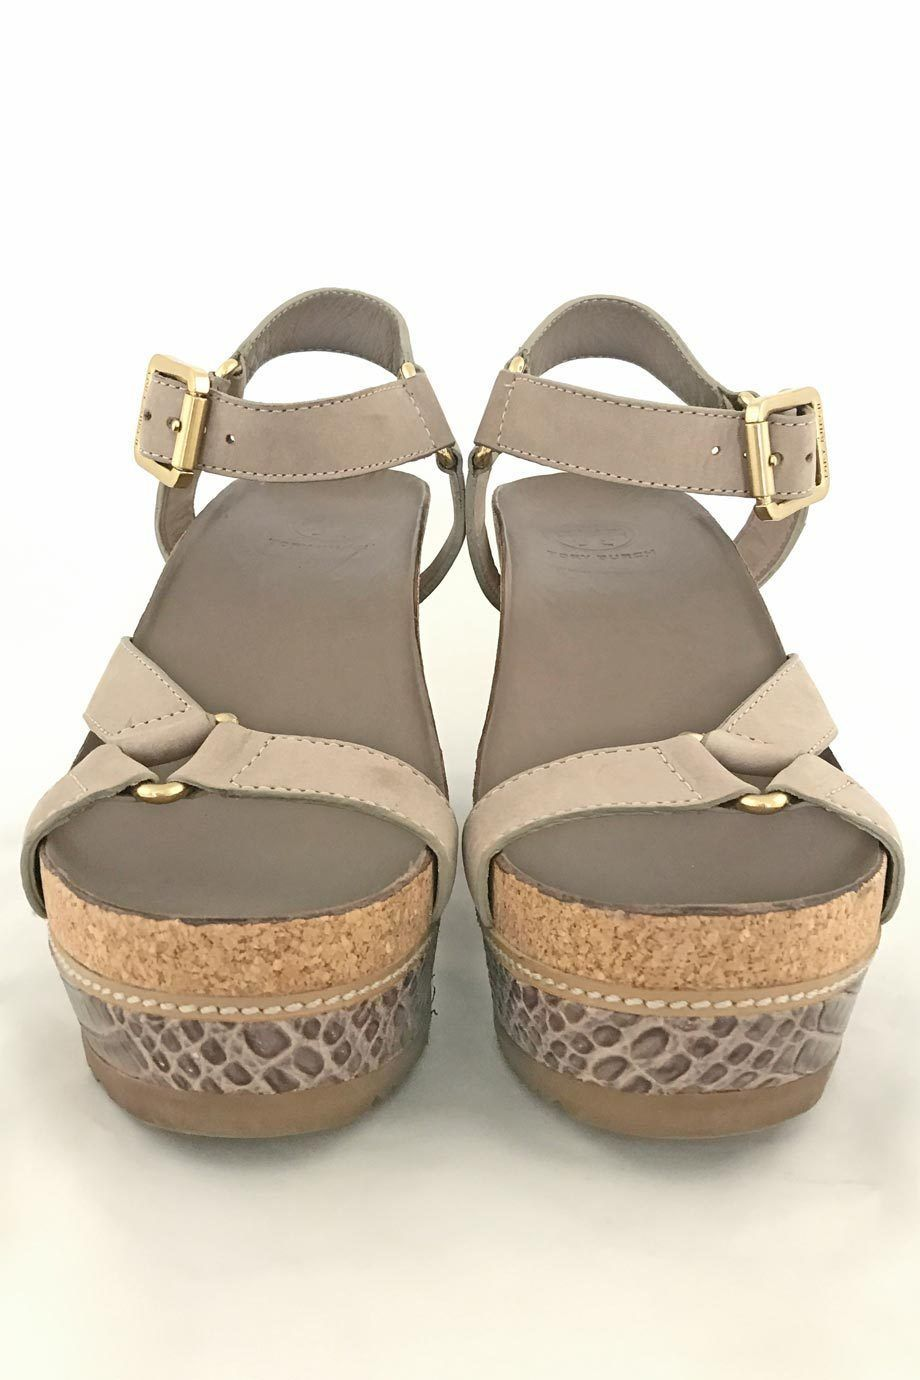 a880cc17ed8f87 These Tory Burch Brenden sandals are the perfect pair for your summer  wardrobe. The neutral